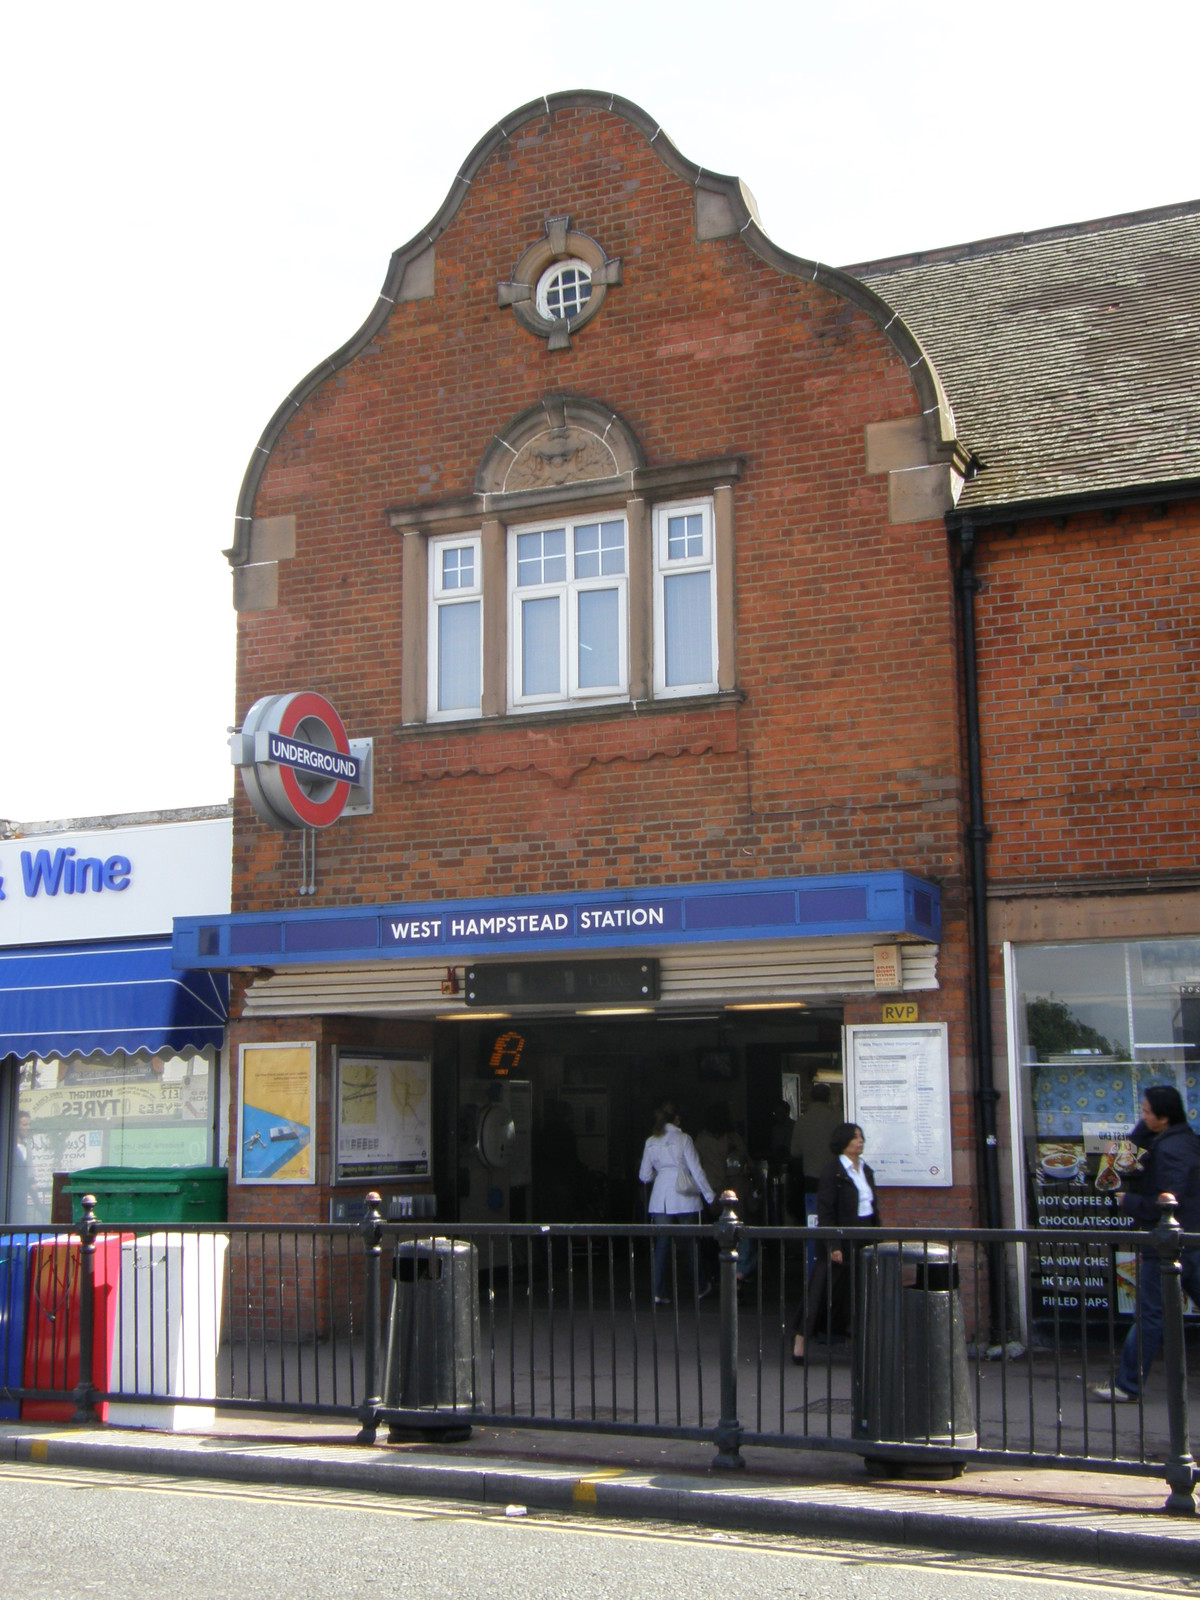 West Hampstead station